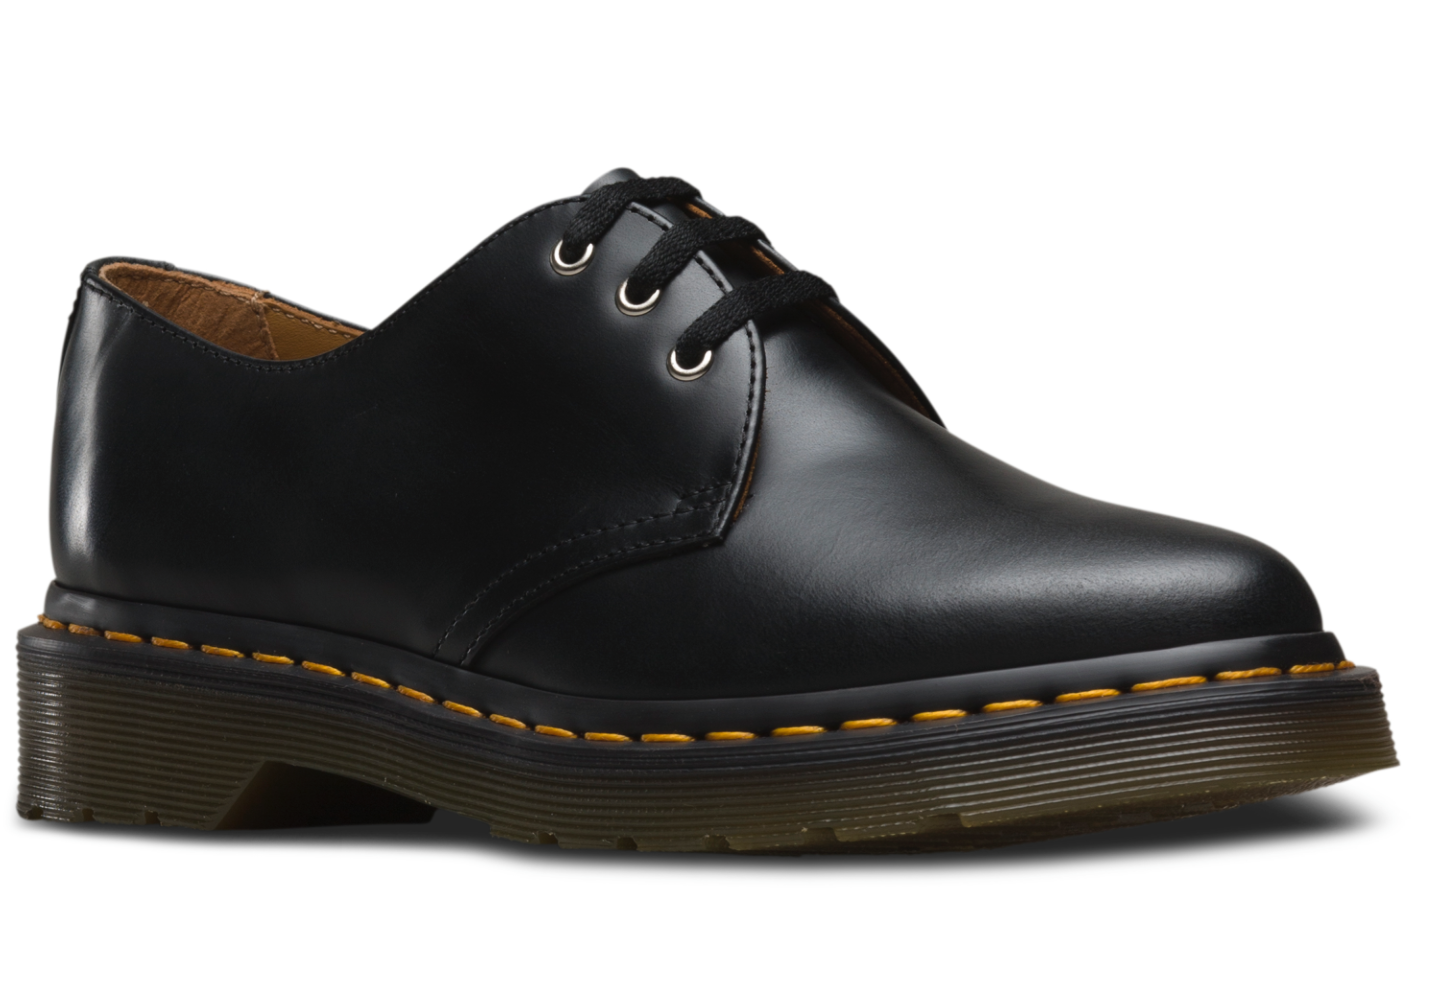 Dr. Martens Dupree 3-Eye Oxford Black by